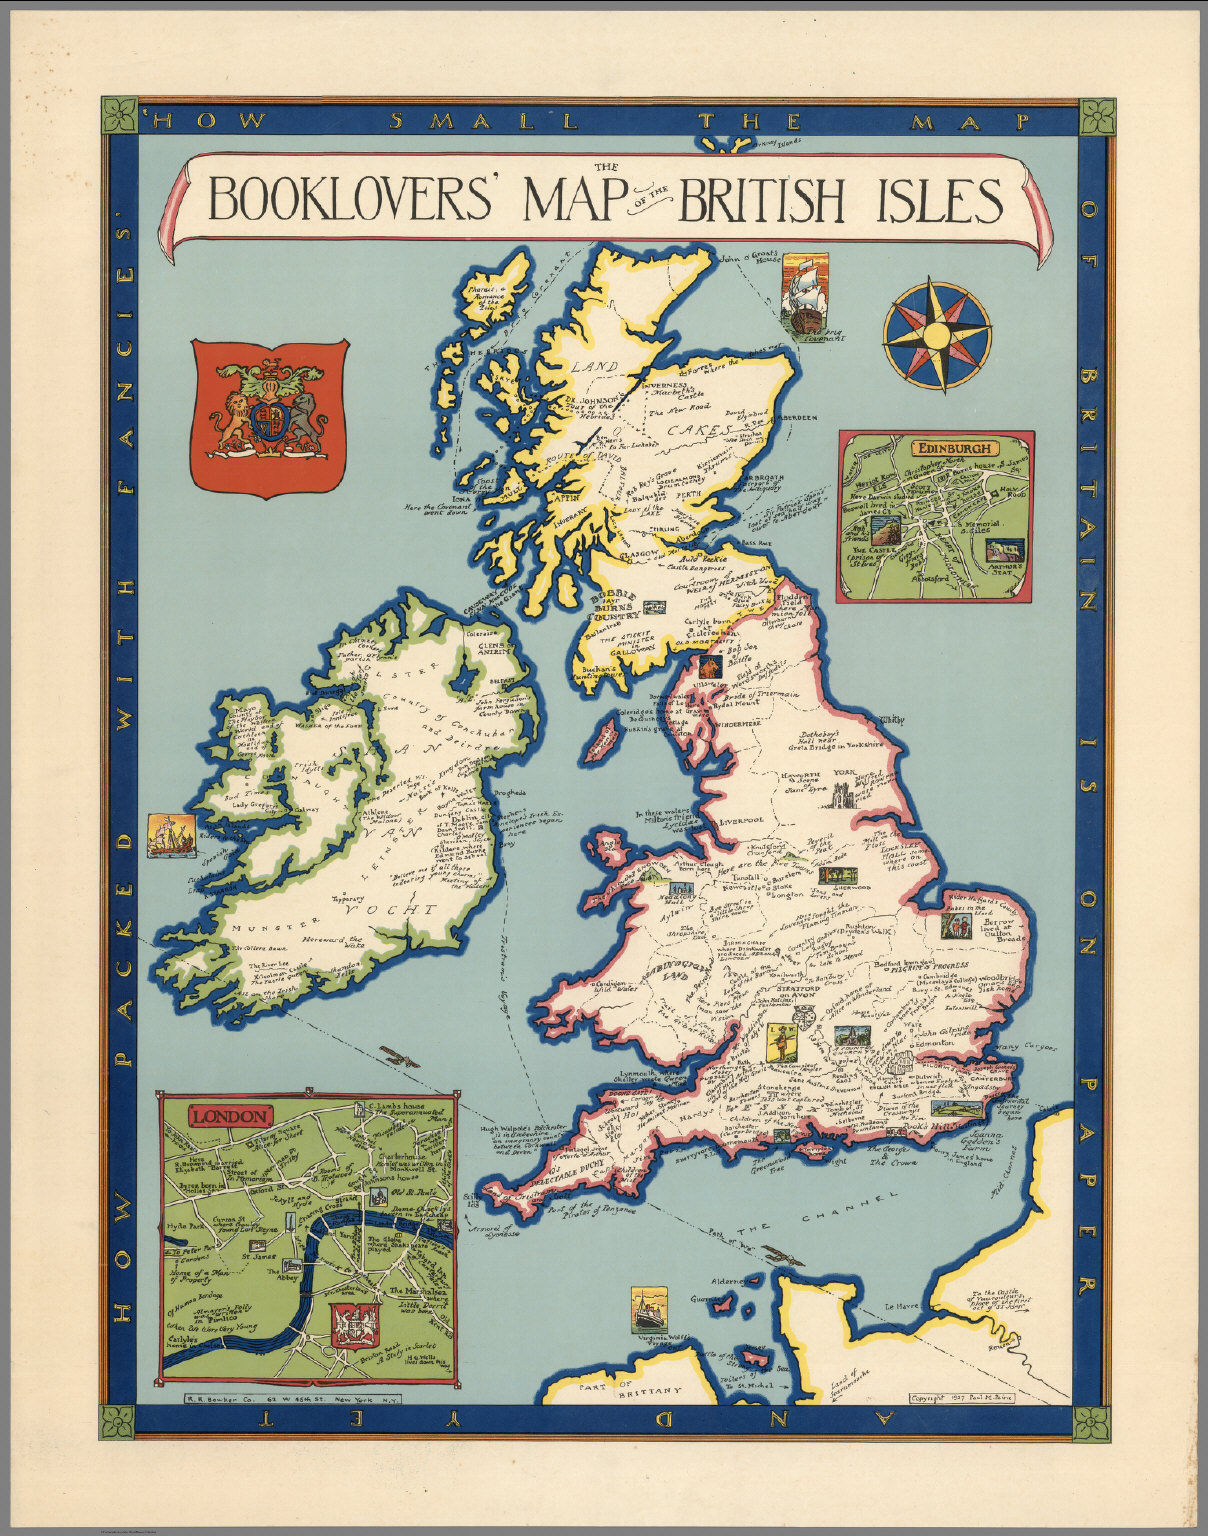 The booklovers' map of the British Isles - David Rumsey Historical Map Collection